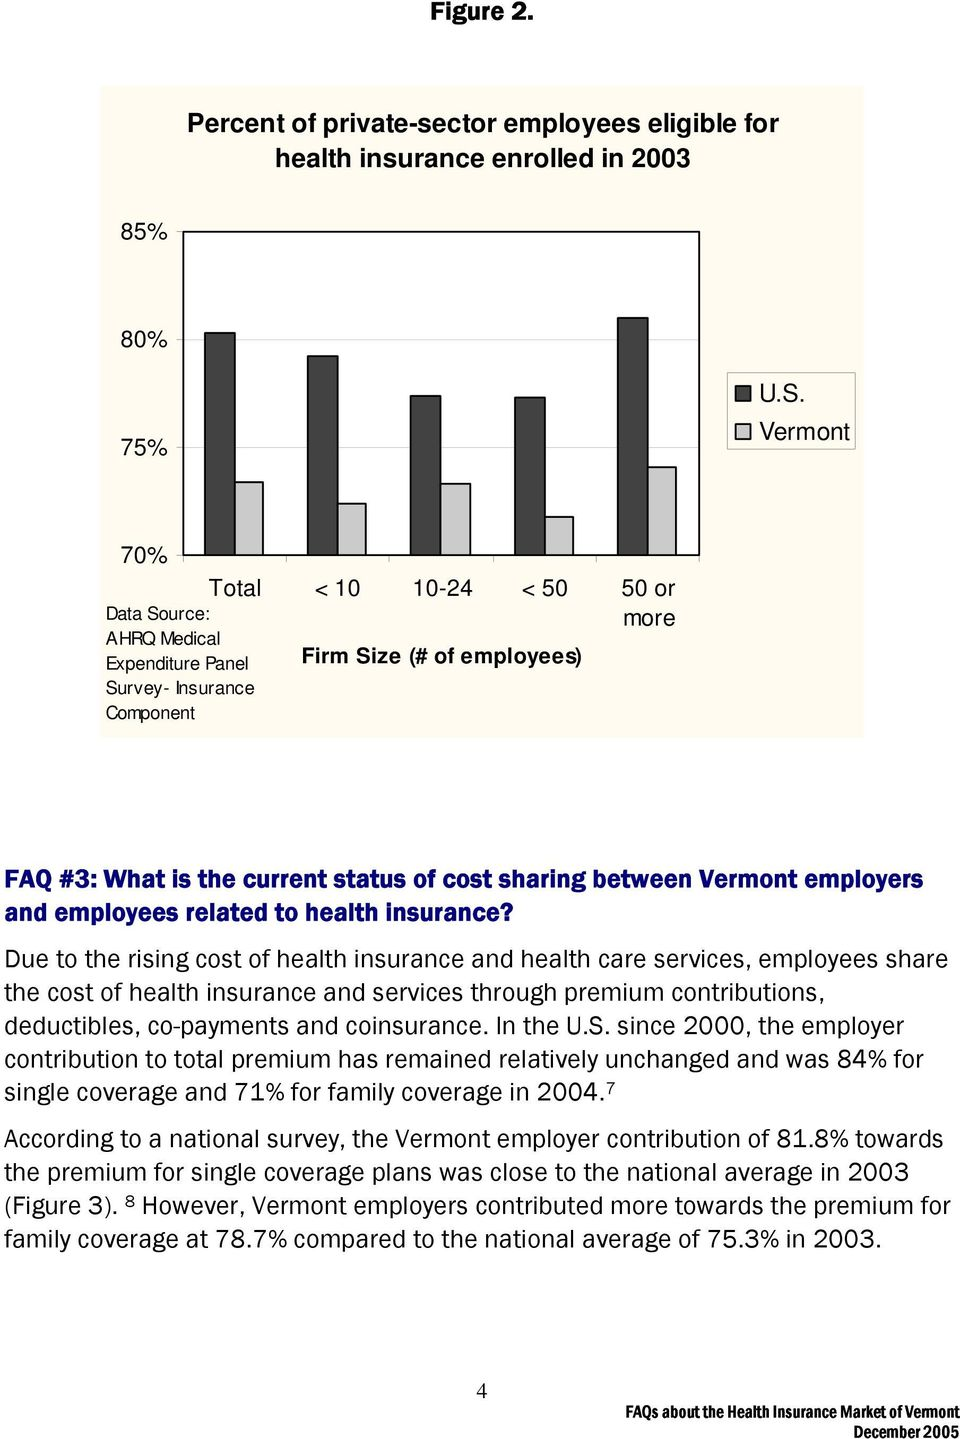 between Vermont employers and employees related to health insurance?